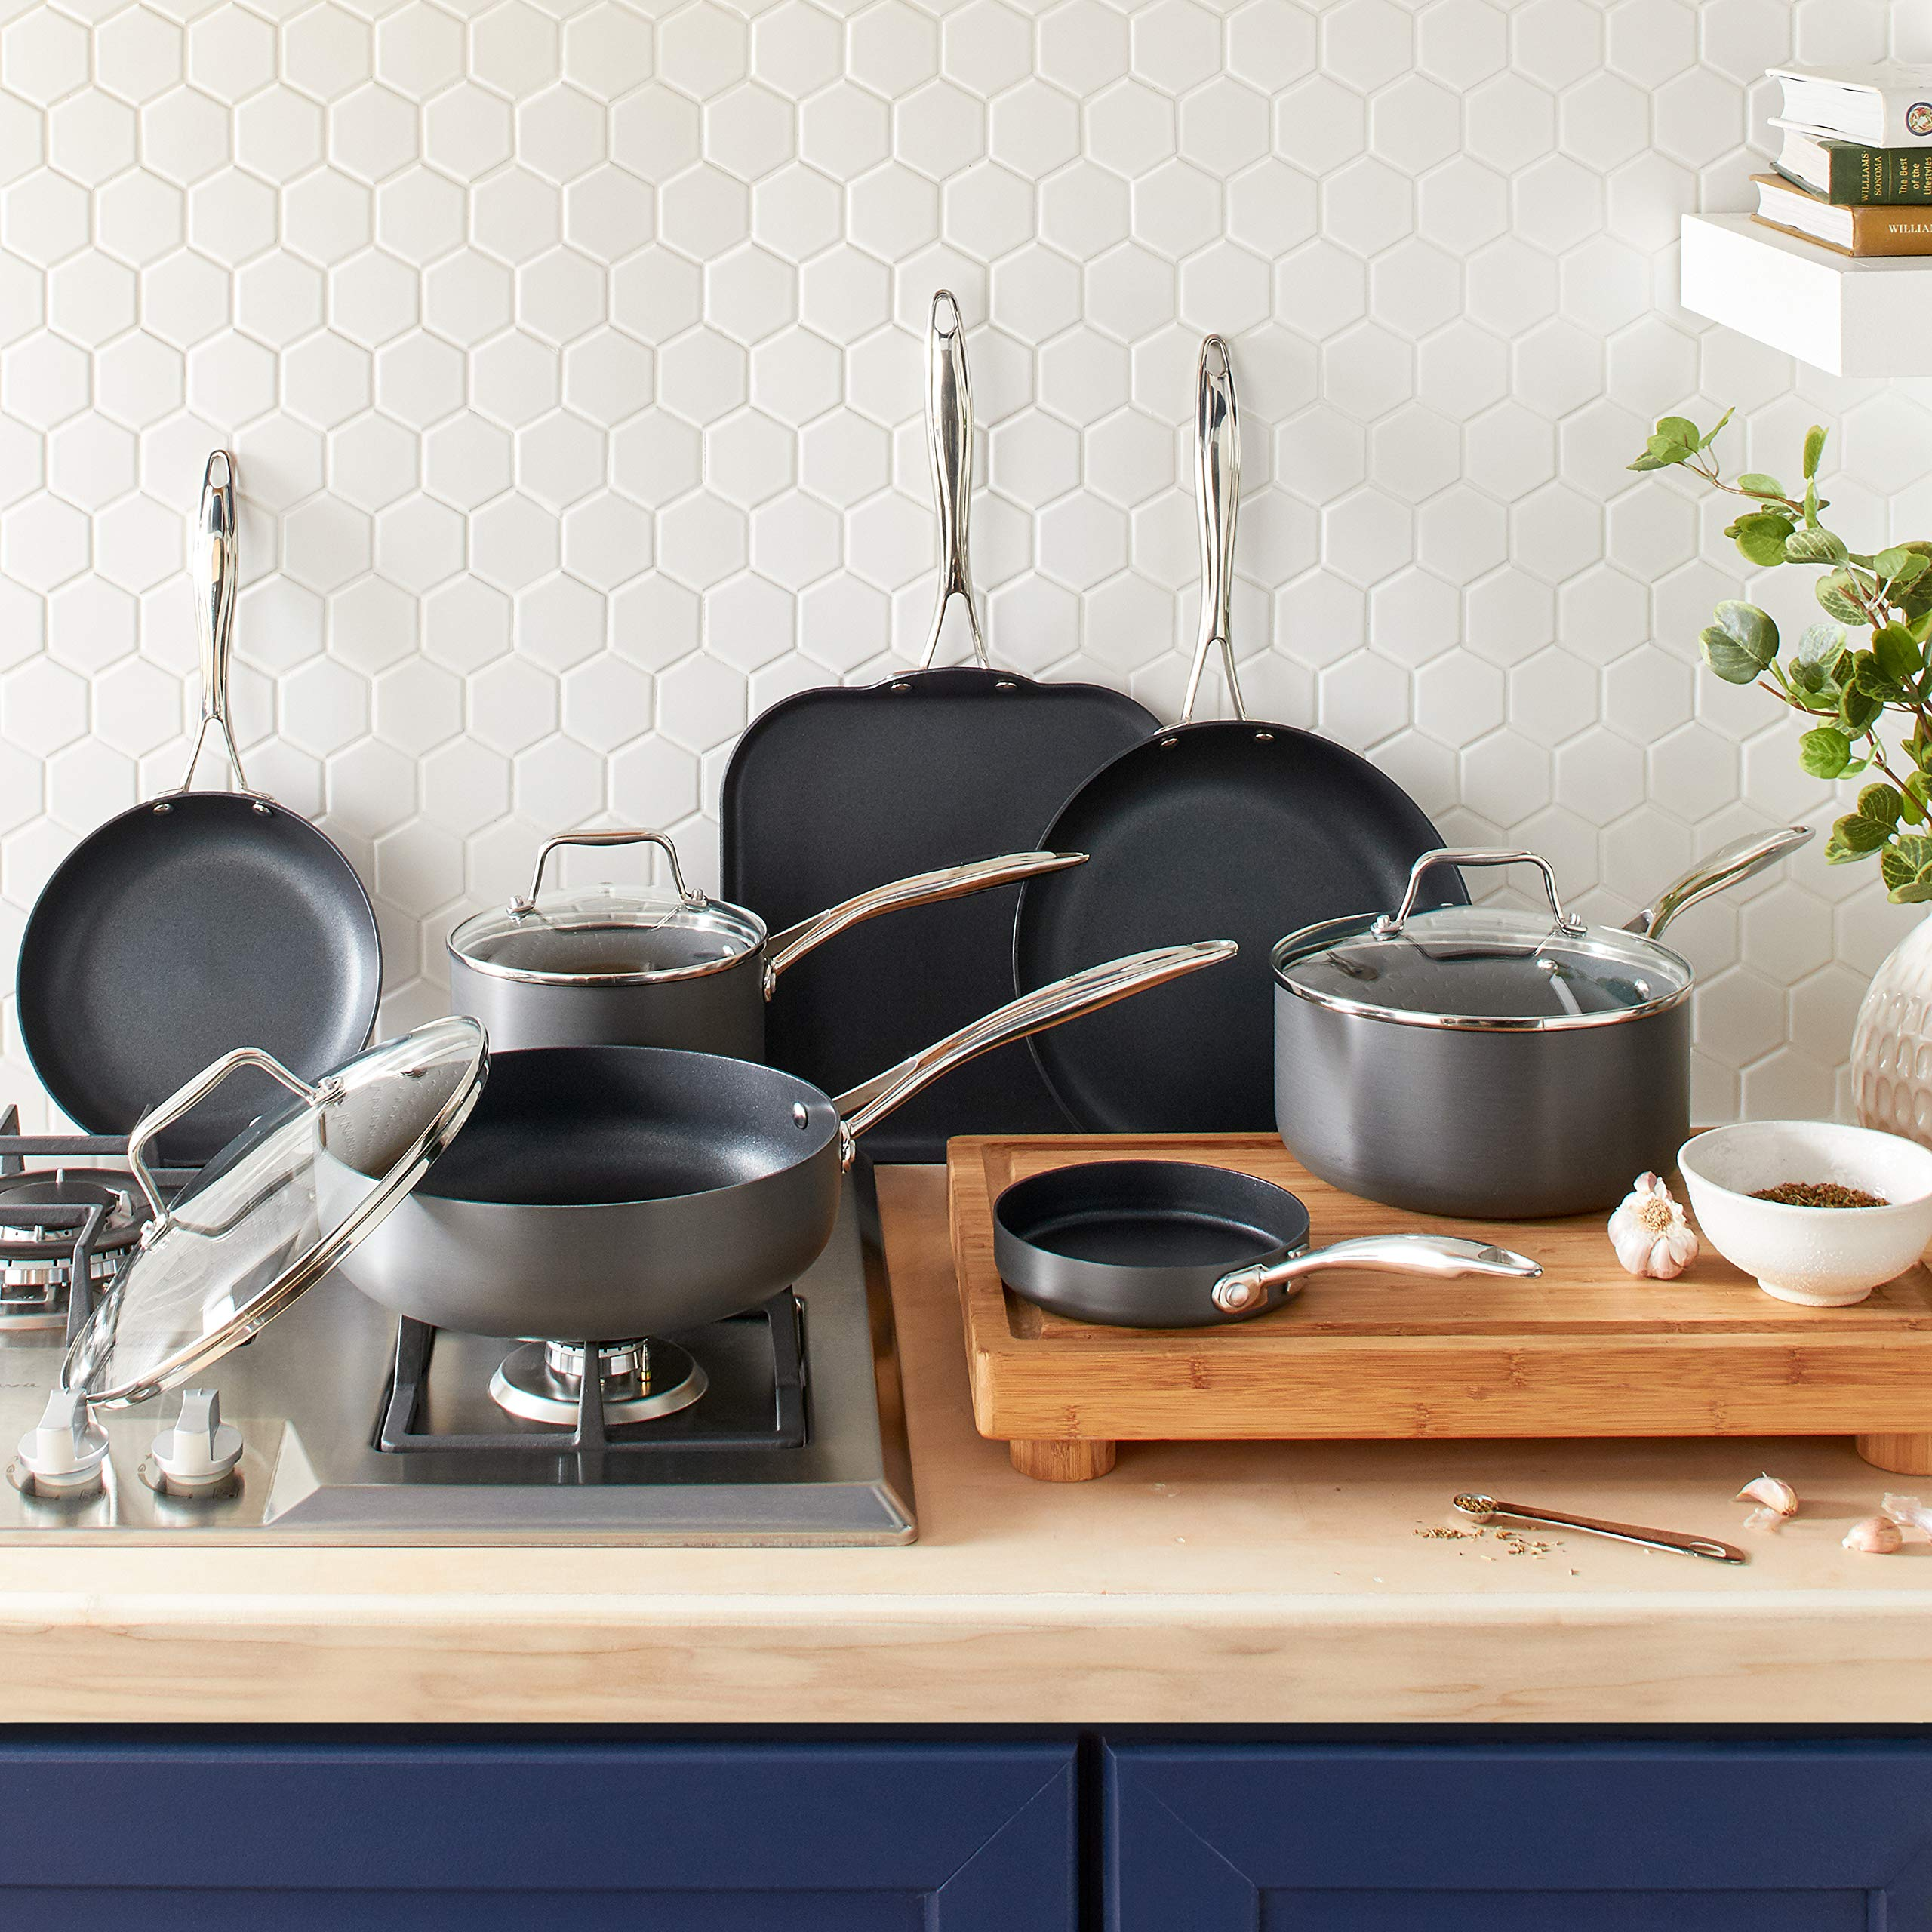 Stone & Beam Kitchen Cookware Set, 17-Piece, Pots and Pans, Hard-Anodized Non-Stick Aluminum by Stone & Beam (Image #3)